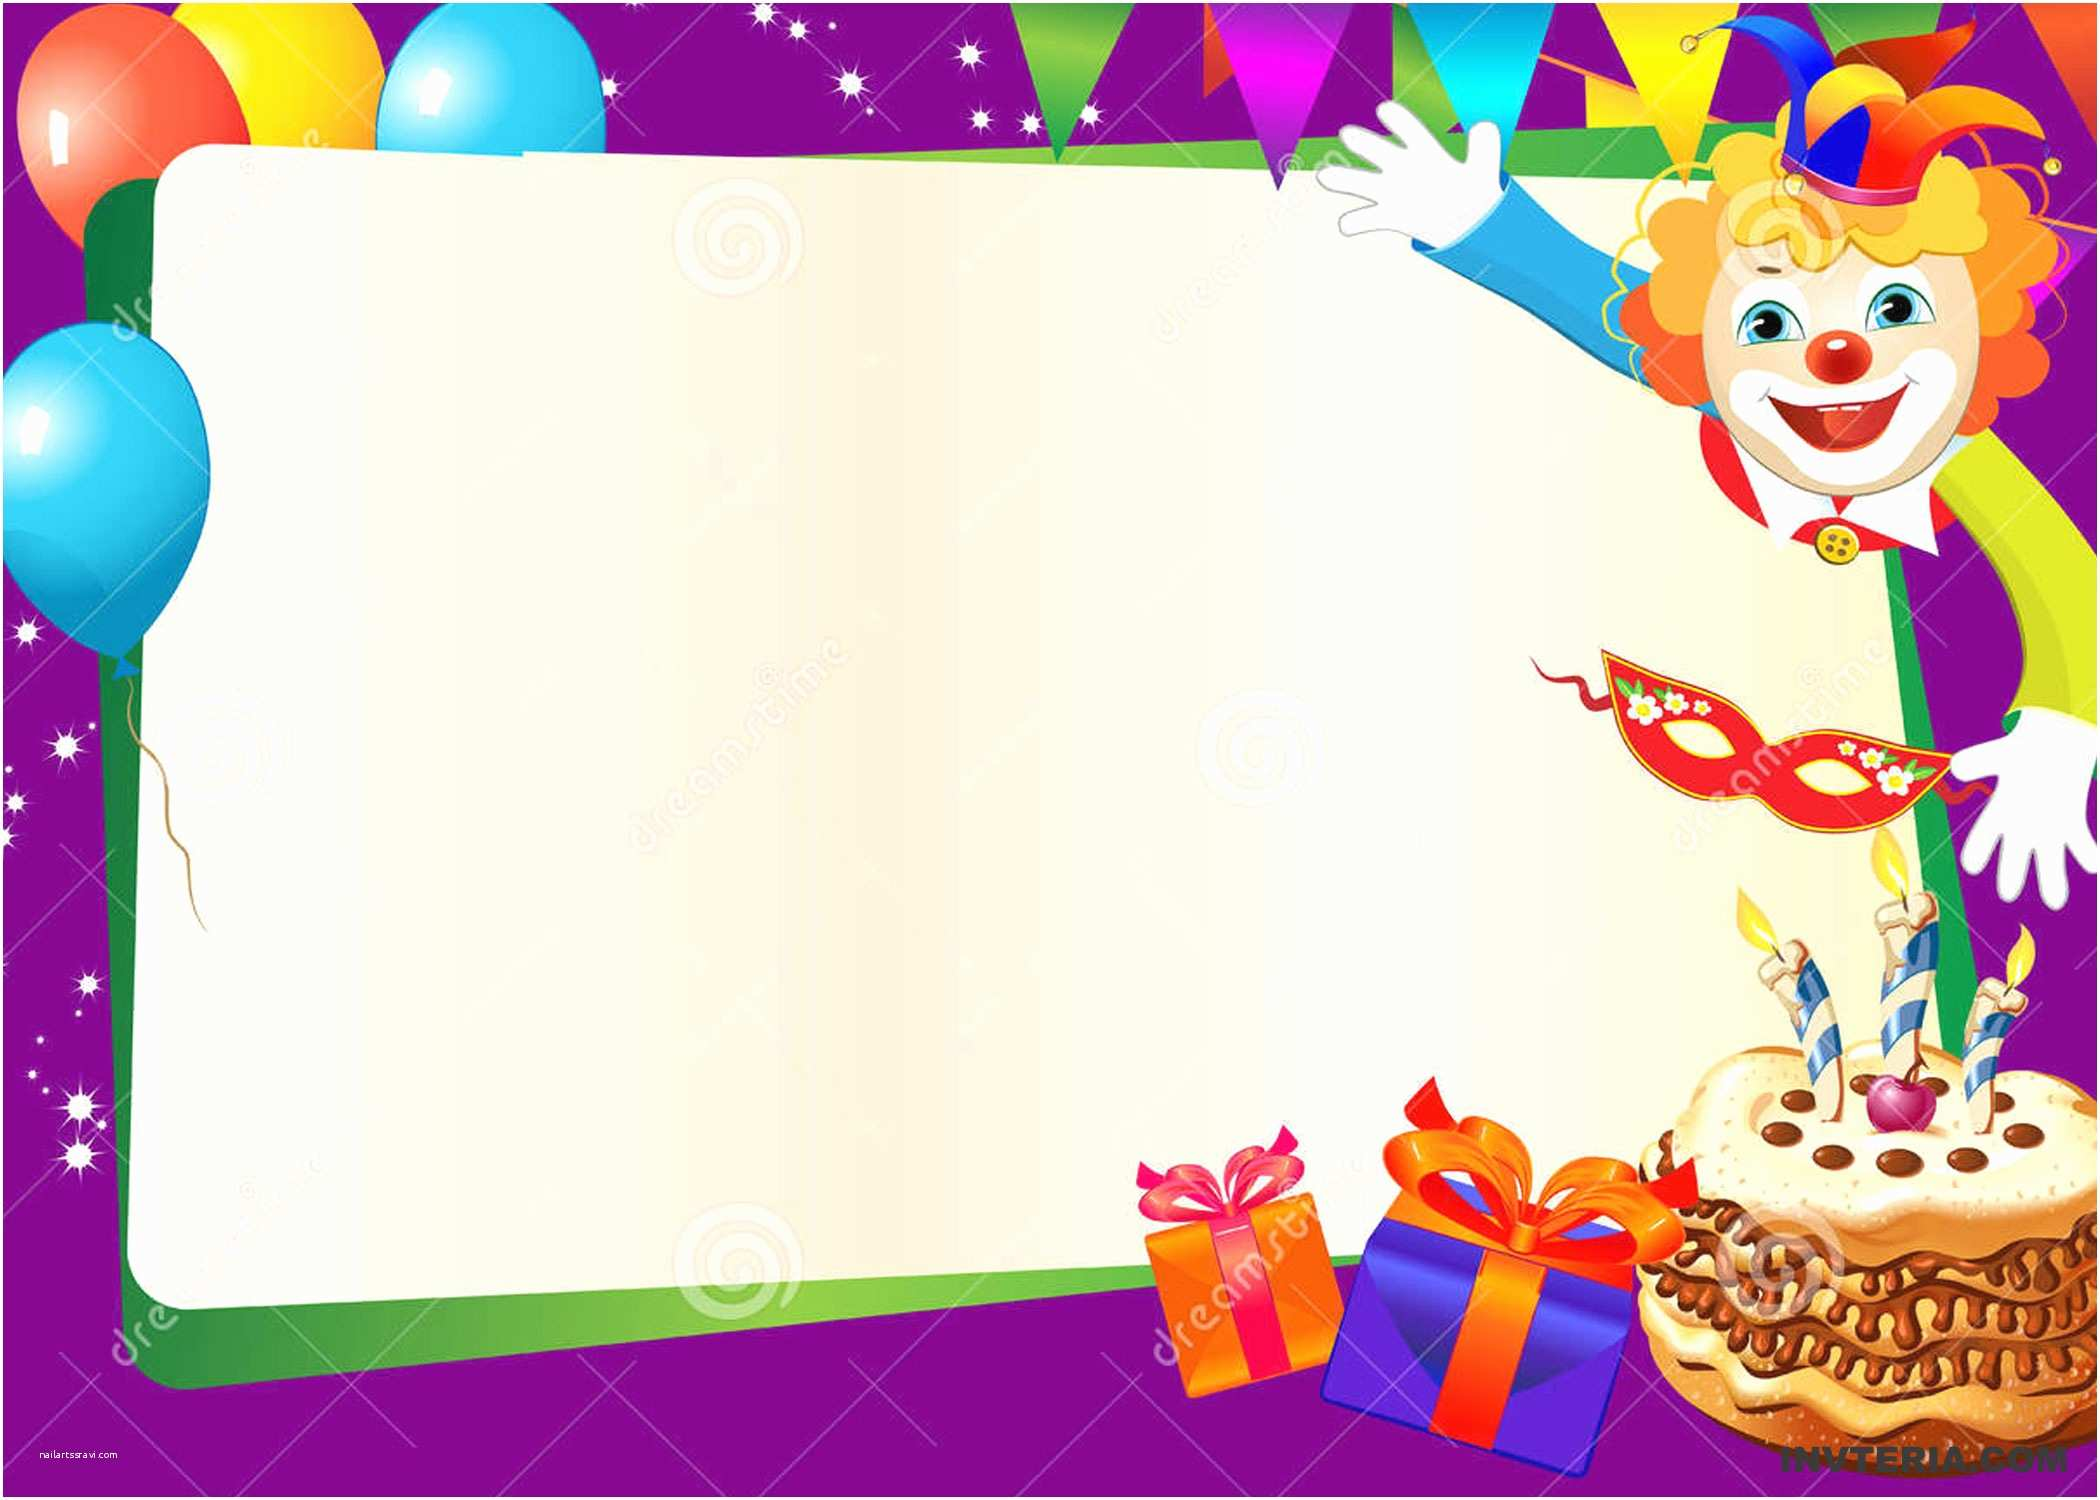 Free Birthday Party Invitation Templates Free Editable Birthday Invitations Templates